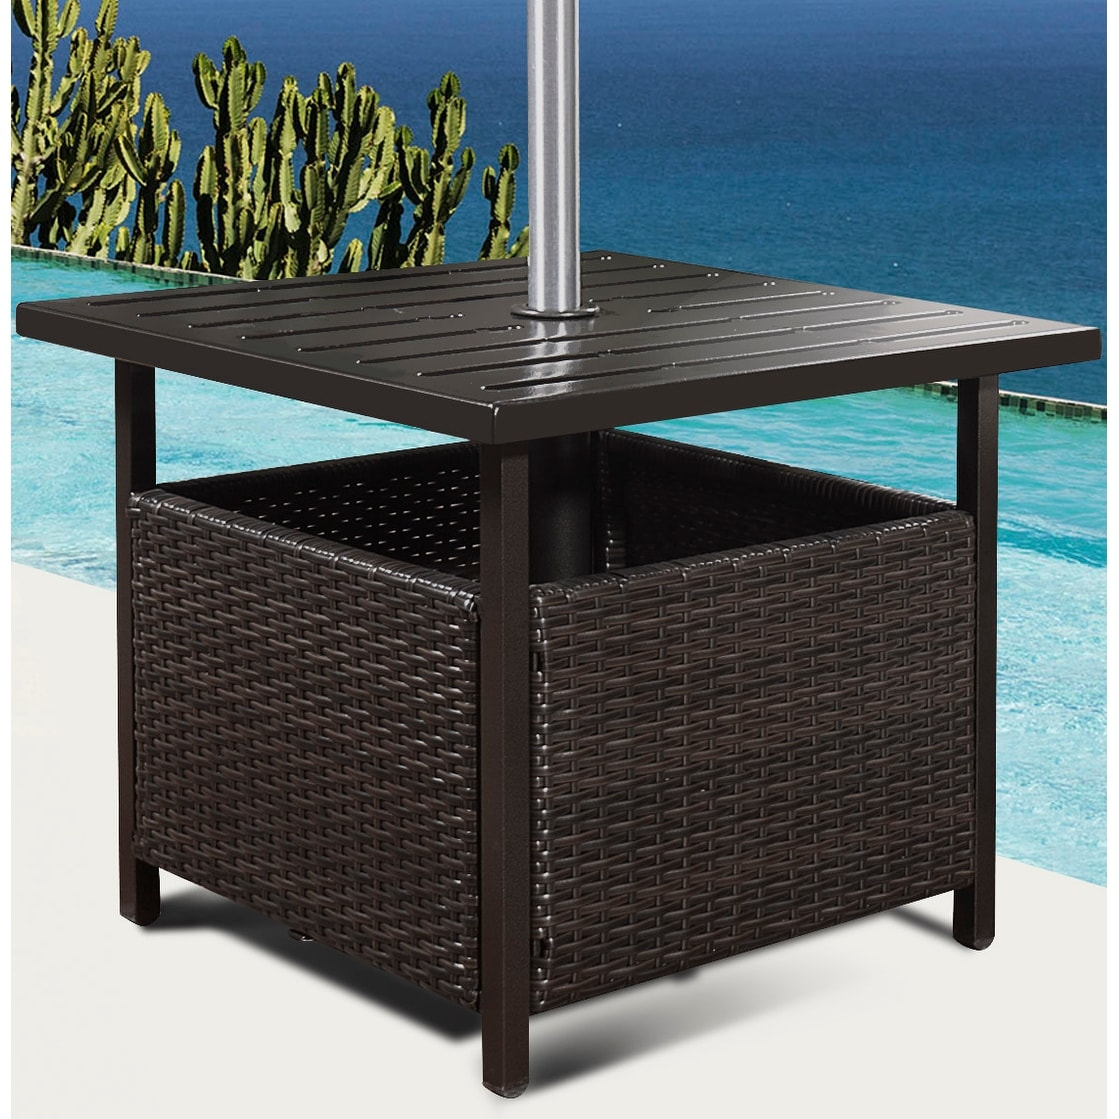 Shop Costway Brown Rattan Wicker Steel Side Table Outdoor Furniture Deck  Garden Patio Pool   Free Shipping Today   Overstock.com   16888775